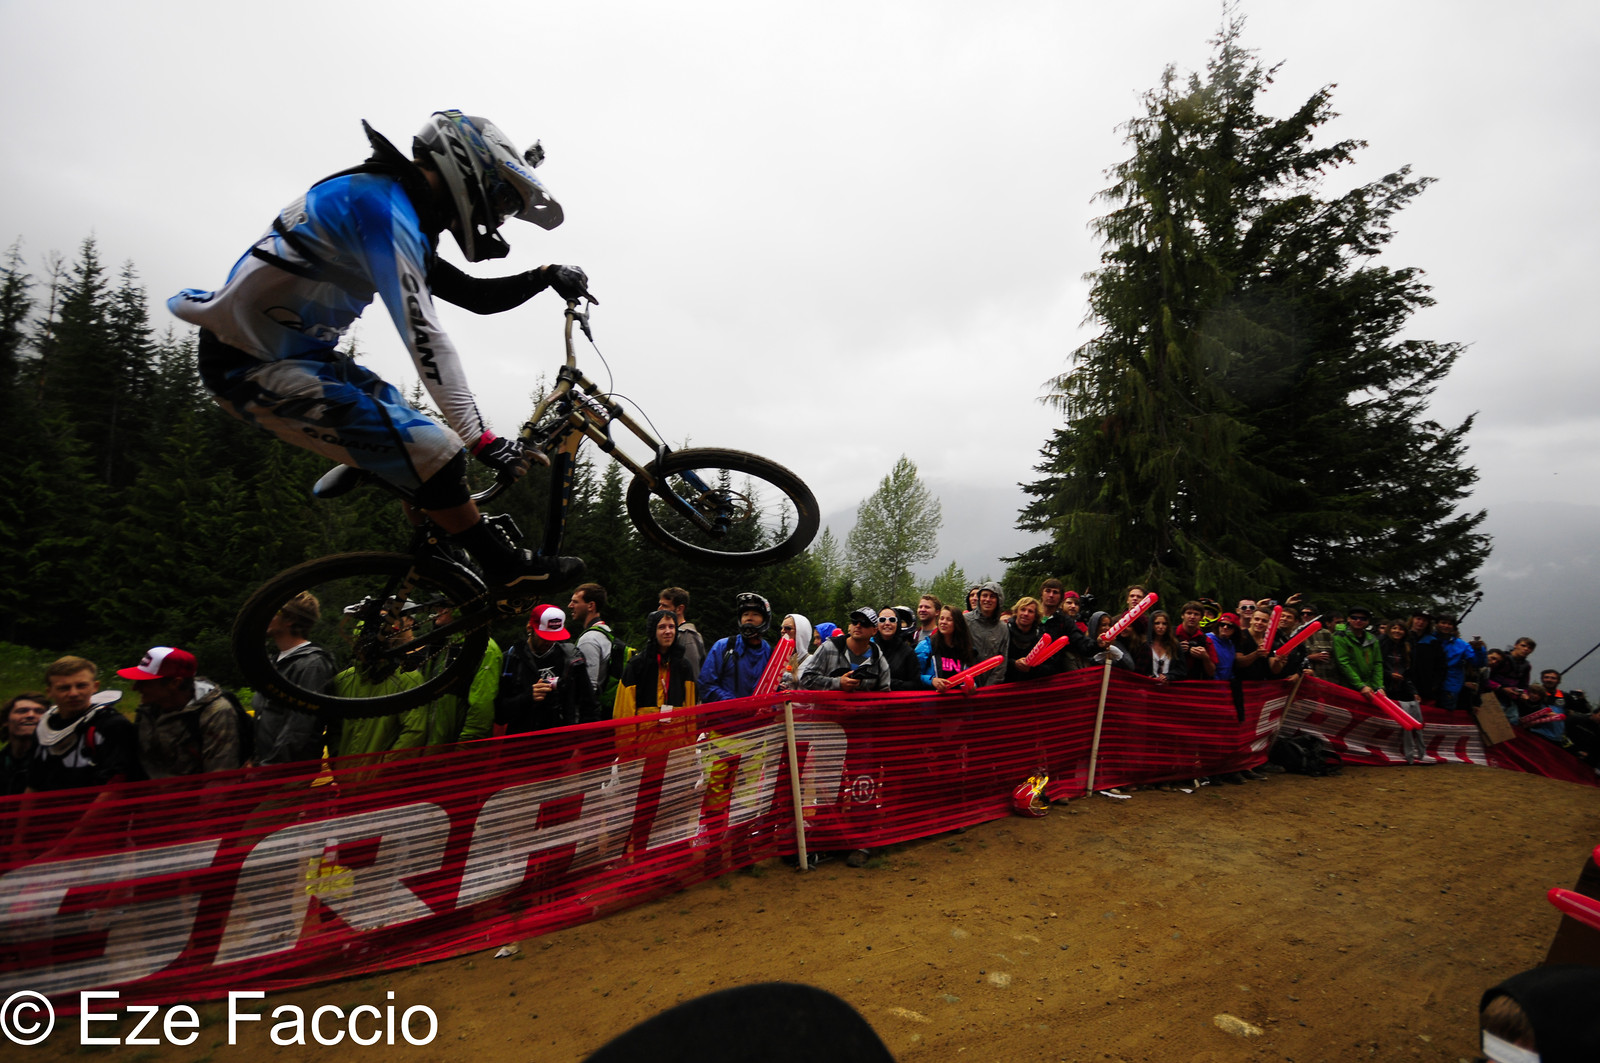 Giant Rider whiping - ezefaccio - Mountain Biking Pictures - Vital MTB